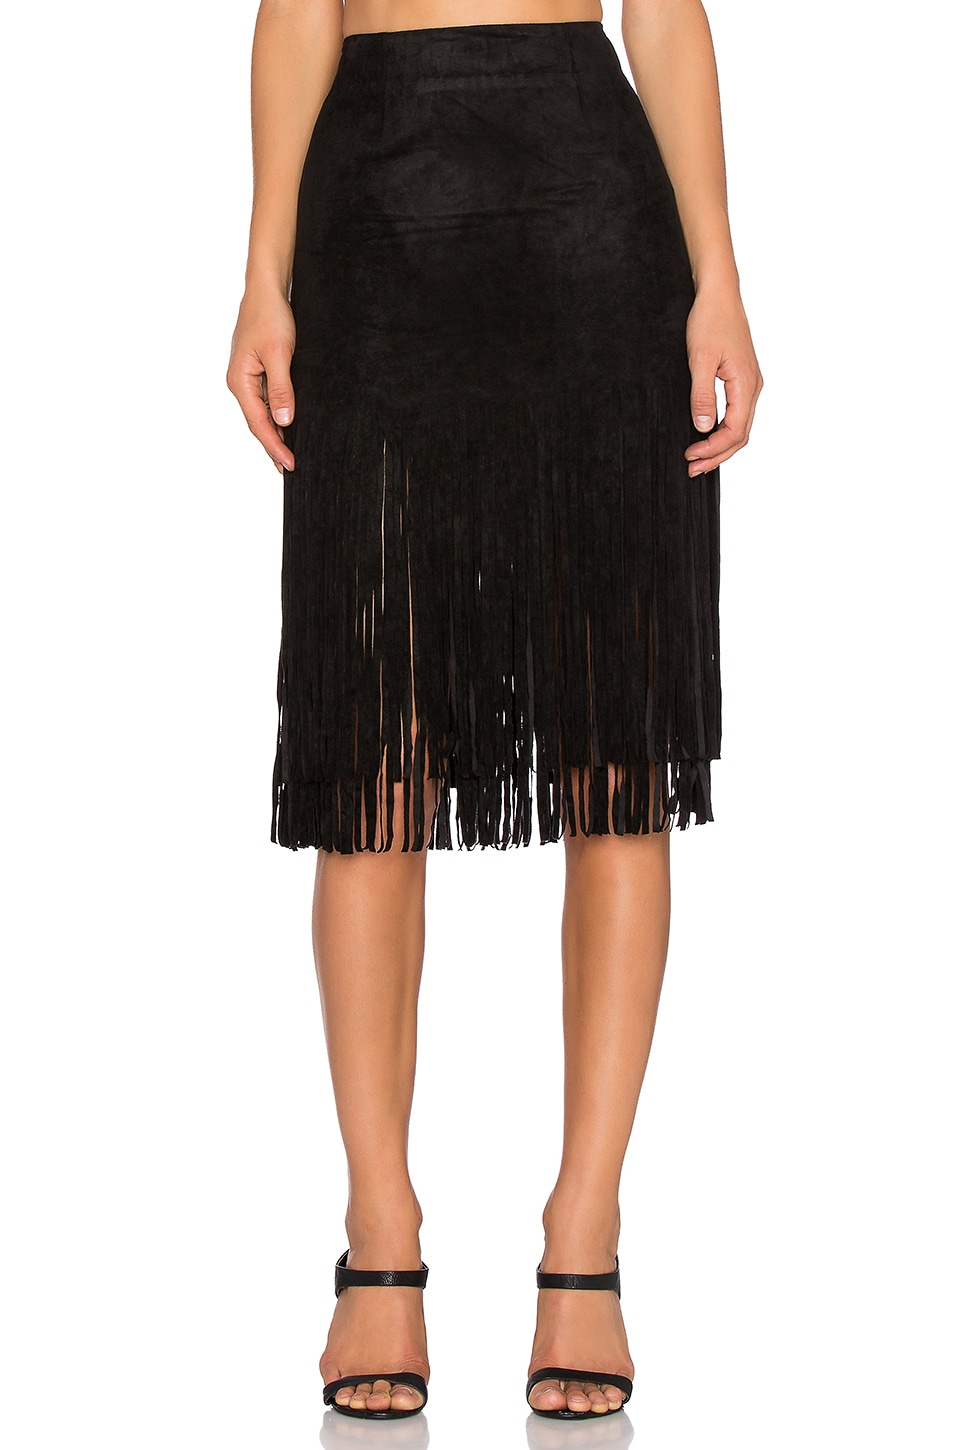 J.O.A. Suede Fringe Skirt in Black